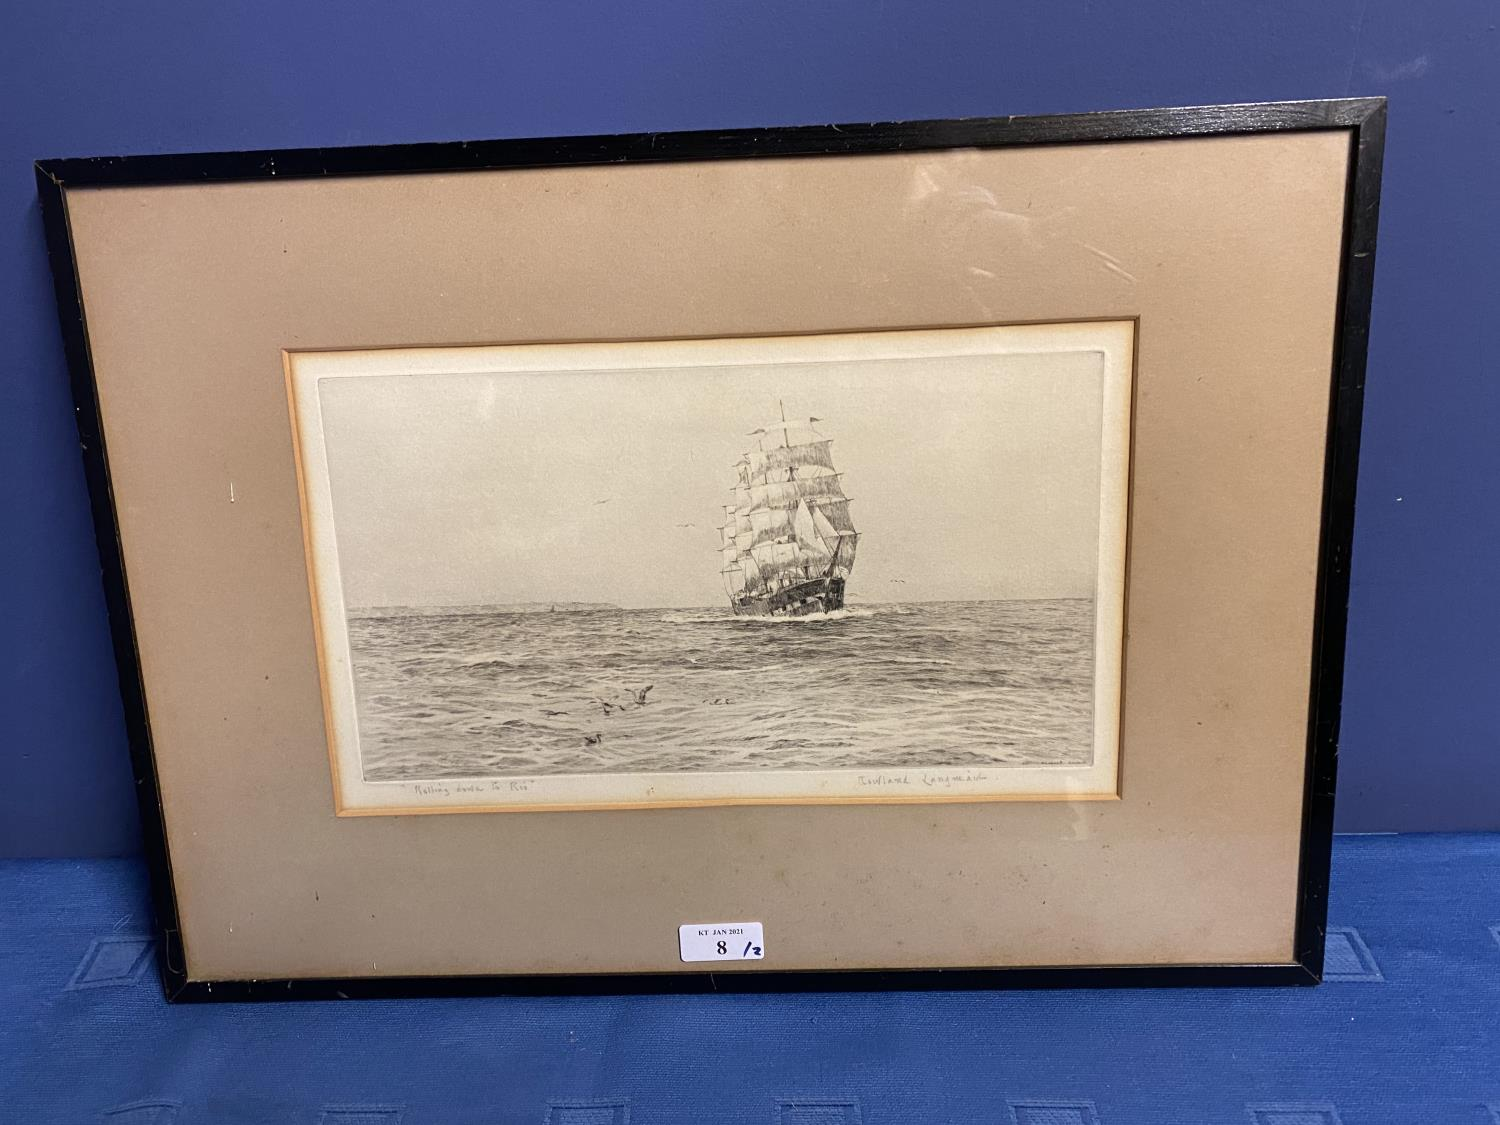 Black and White etching on Paper, Sailing ship fully rigged at sea, 17 x 30cm , signed and titled in - Image 9 of 15